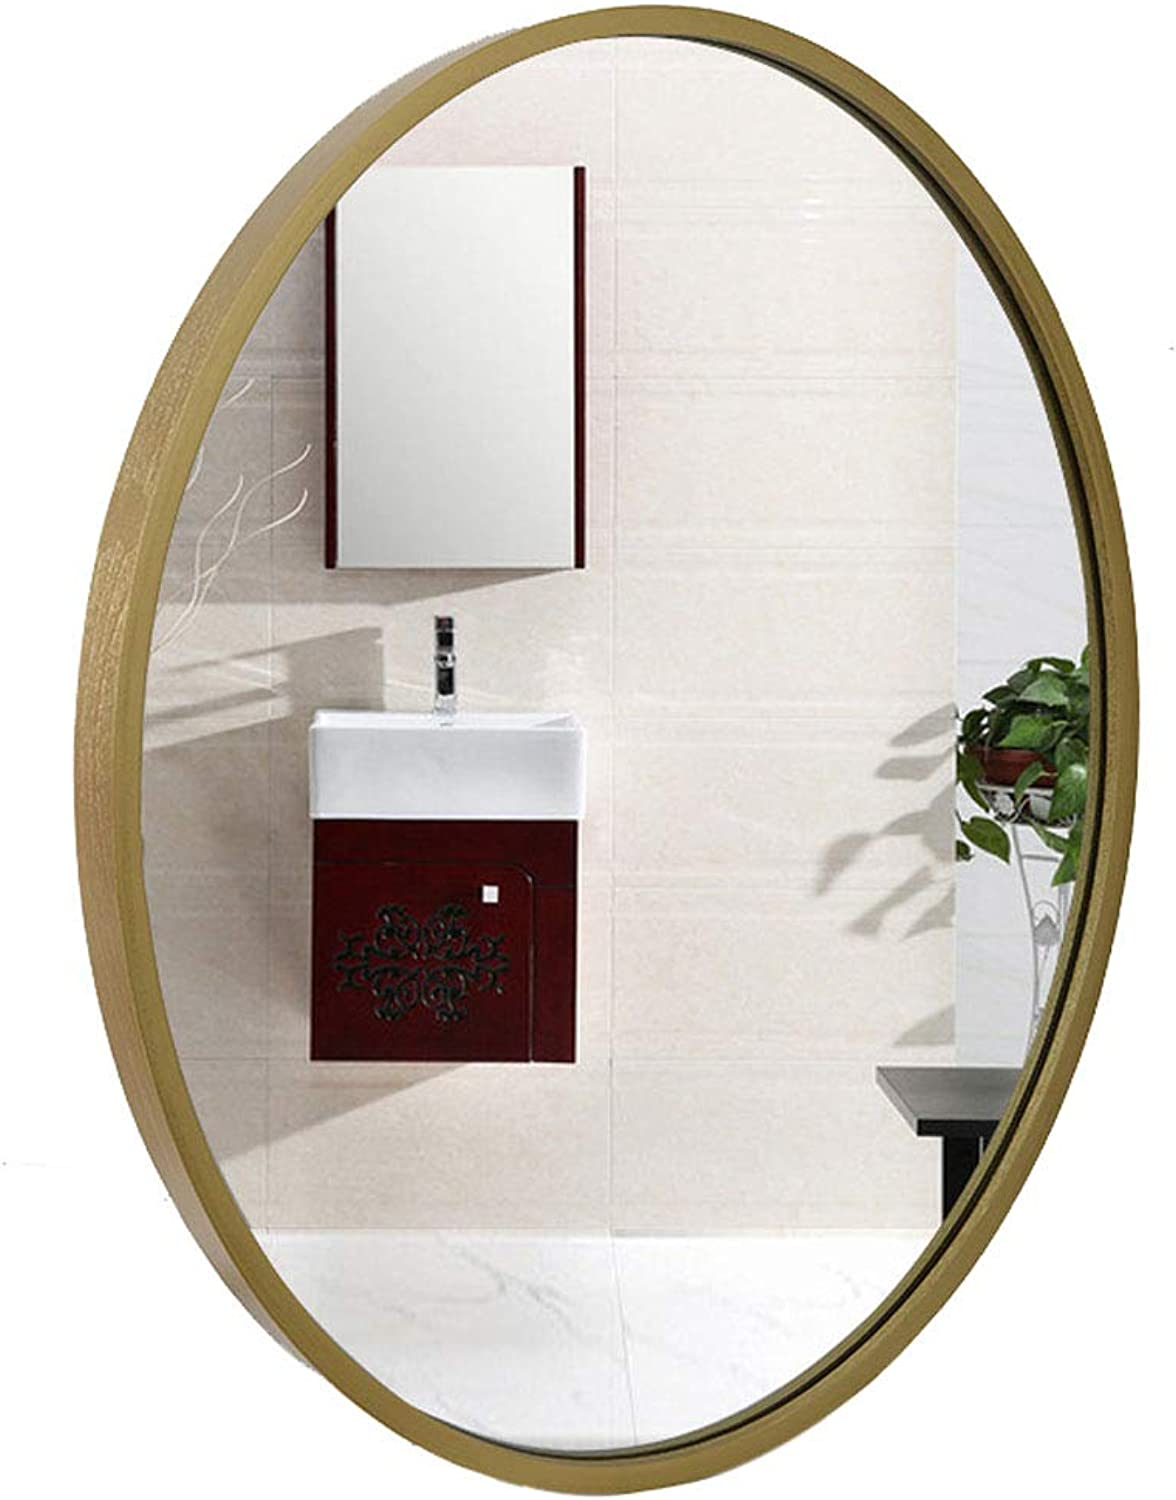 Large Simple Oval Wall Mirror Solid Wood Frame Oval Makeup Mirror Best for Vanity, Bedroom, or Bathroom